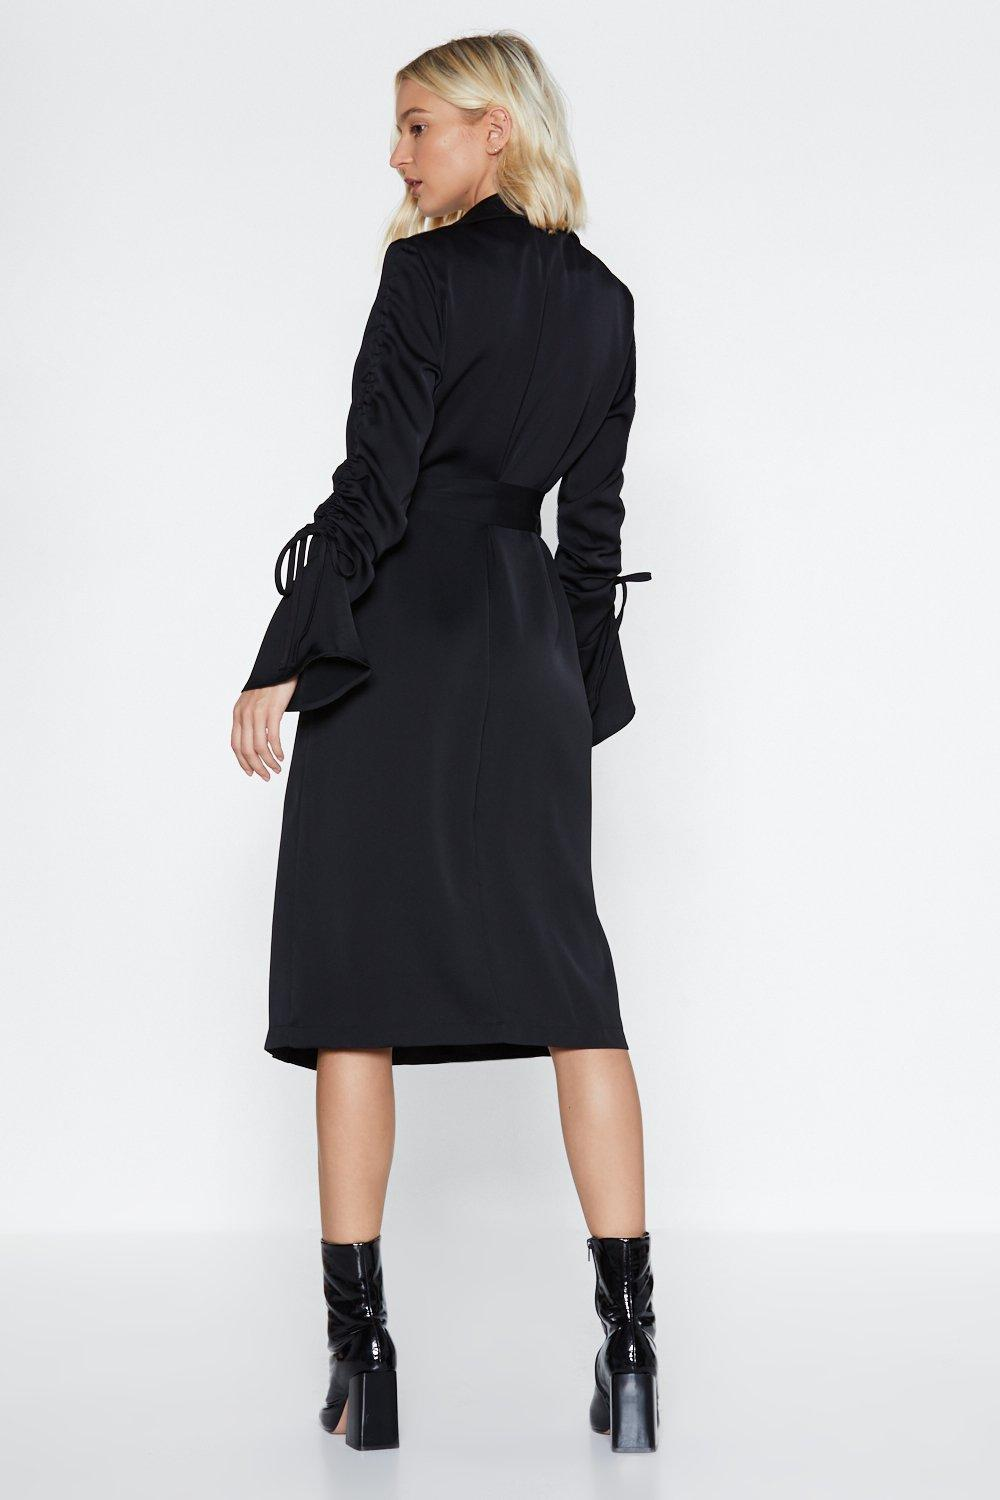 8b10f7bfdcf In Disguise Satin Blazer Dress. Hover to zoom